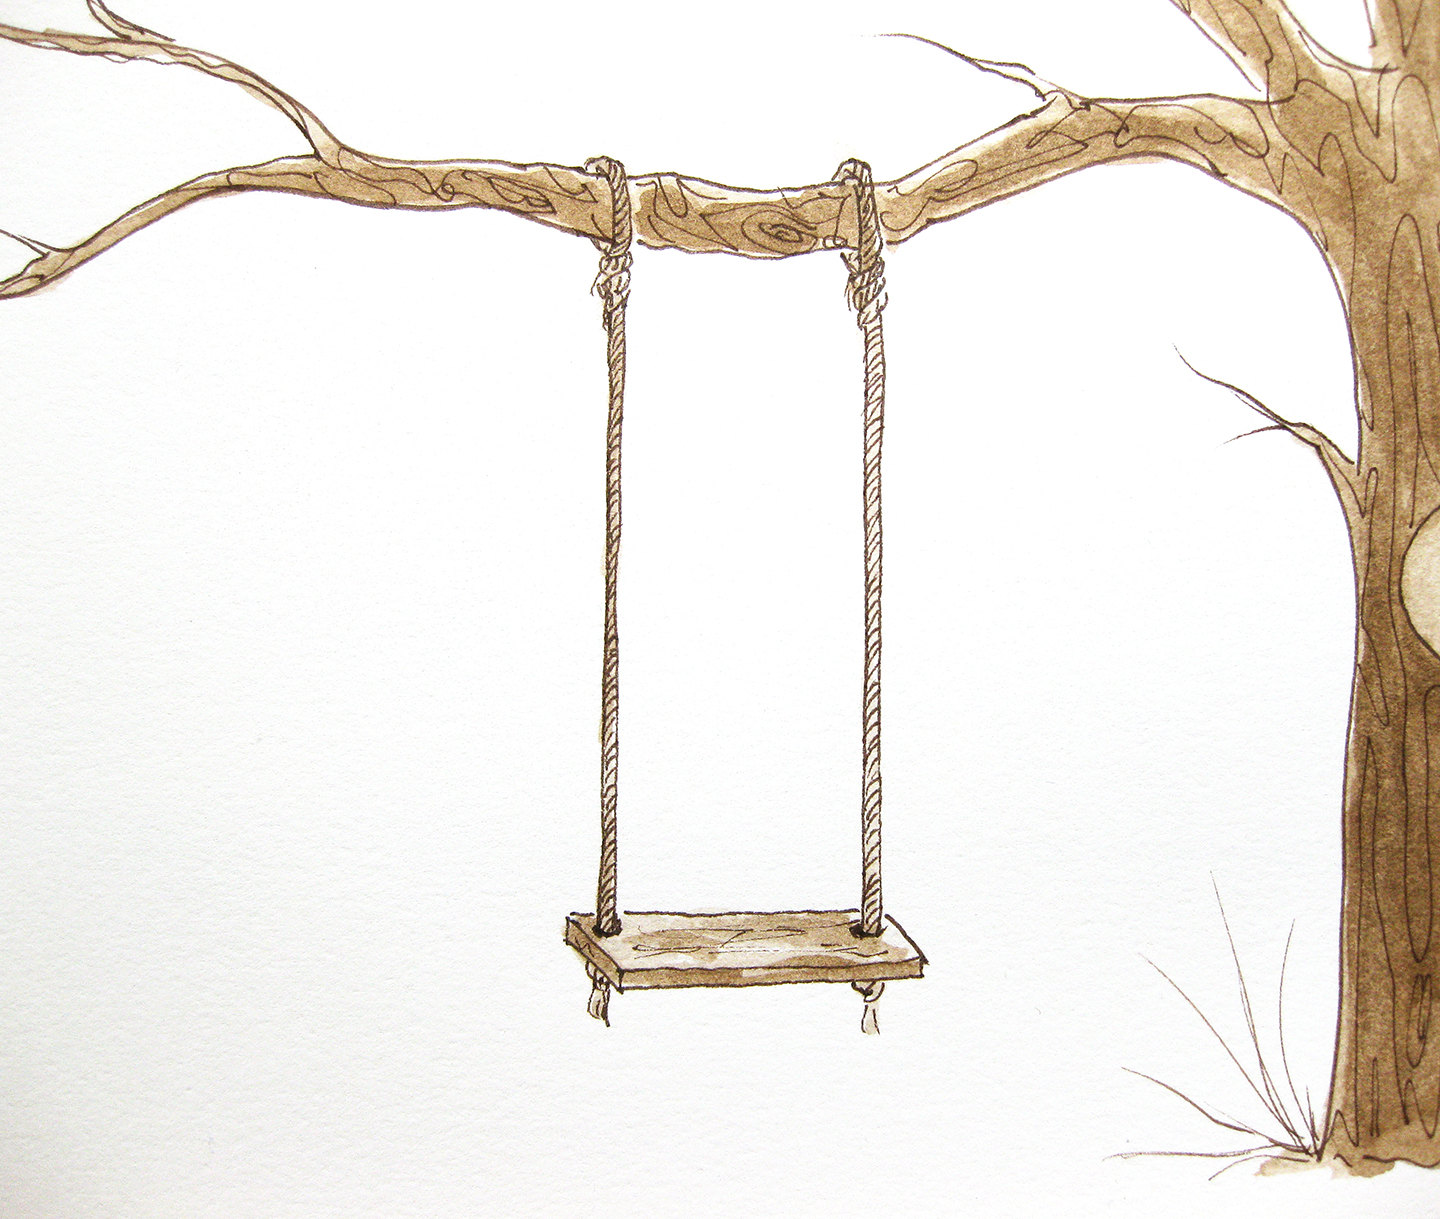 Free Tree Swing Cliparts, Download Free Clip Art, Free Clip.